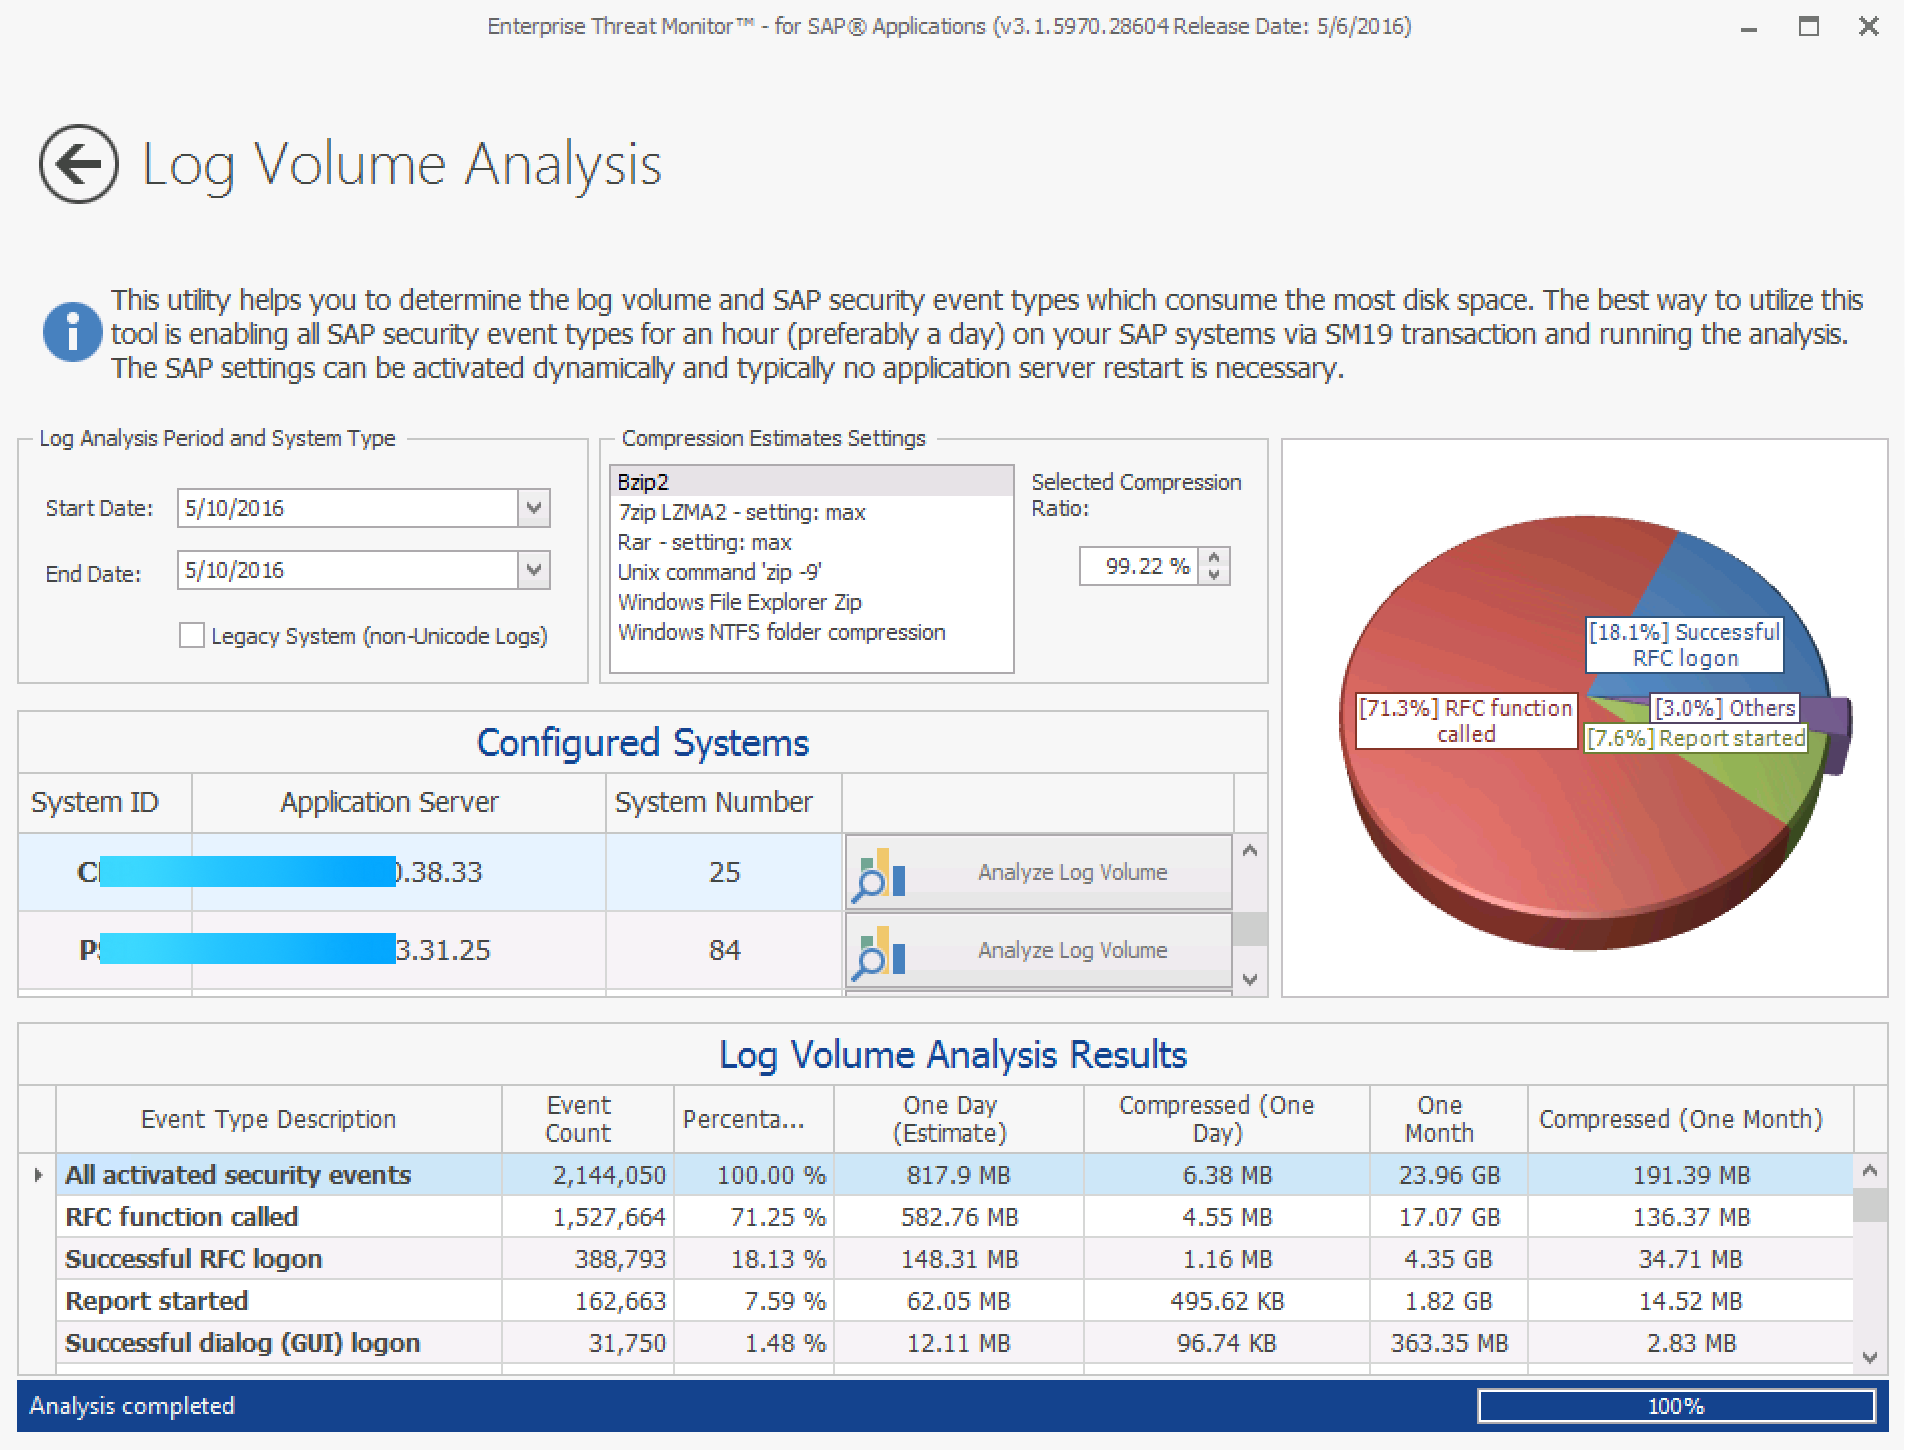 Enterprise Threat Monitor - SAP Log Volume Analysis.png